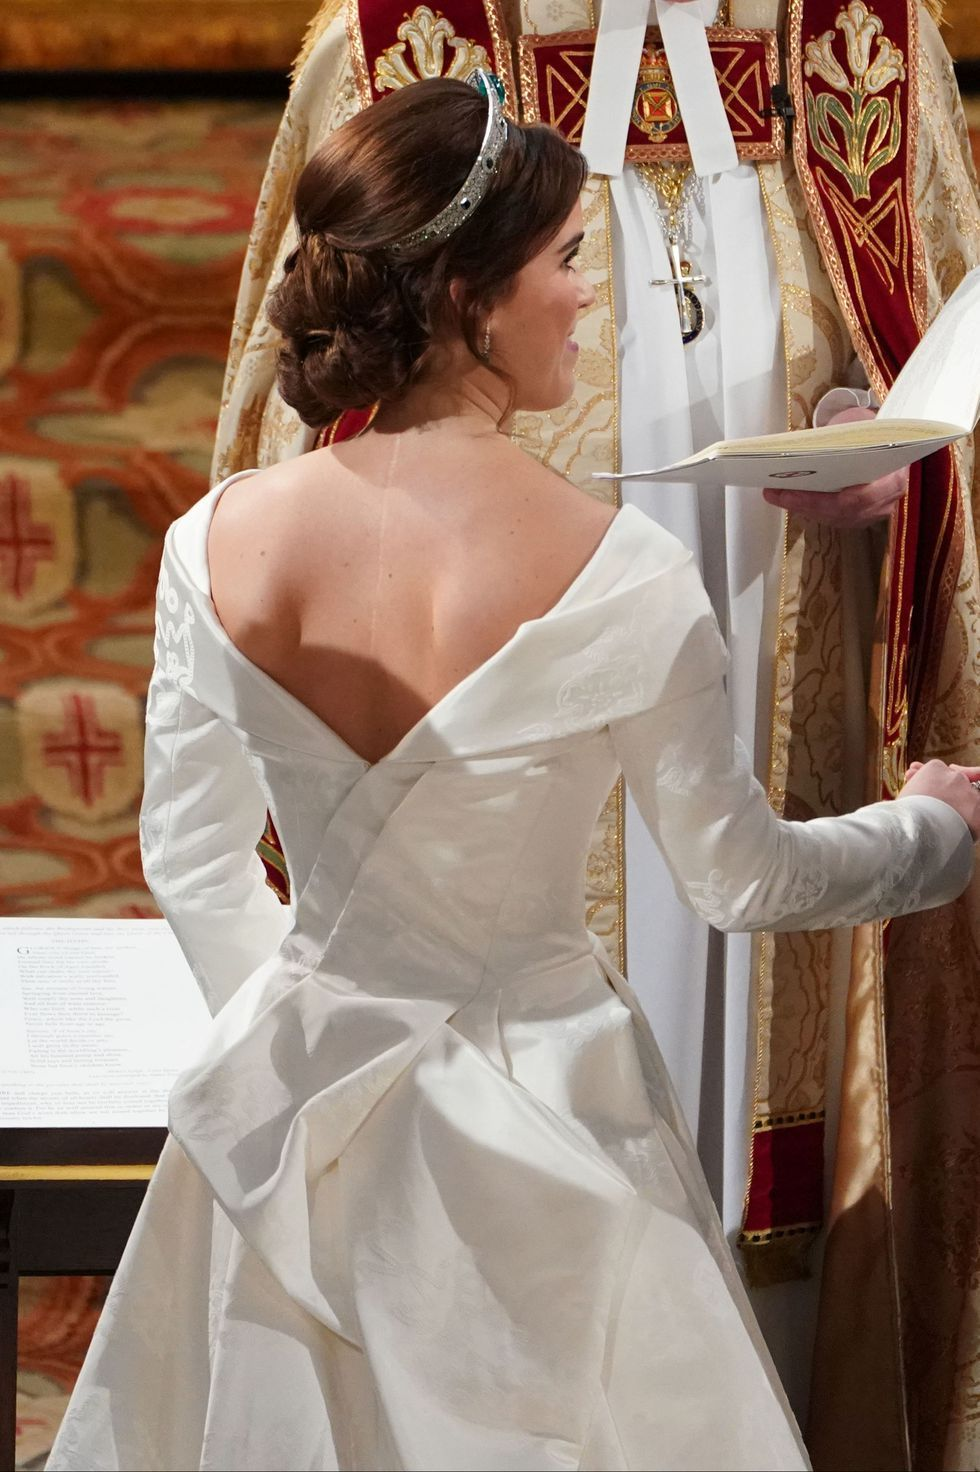 See Princess Eugenie S Open Back Wedding Dress Designed To Feature Her Spinal Surgery Scar Wedding Dresses Vogue Royal Wedding Dress Red Wedding Dresses [ 1333 x 2000 Pixel ]